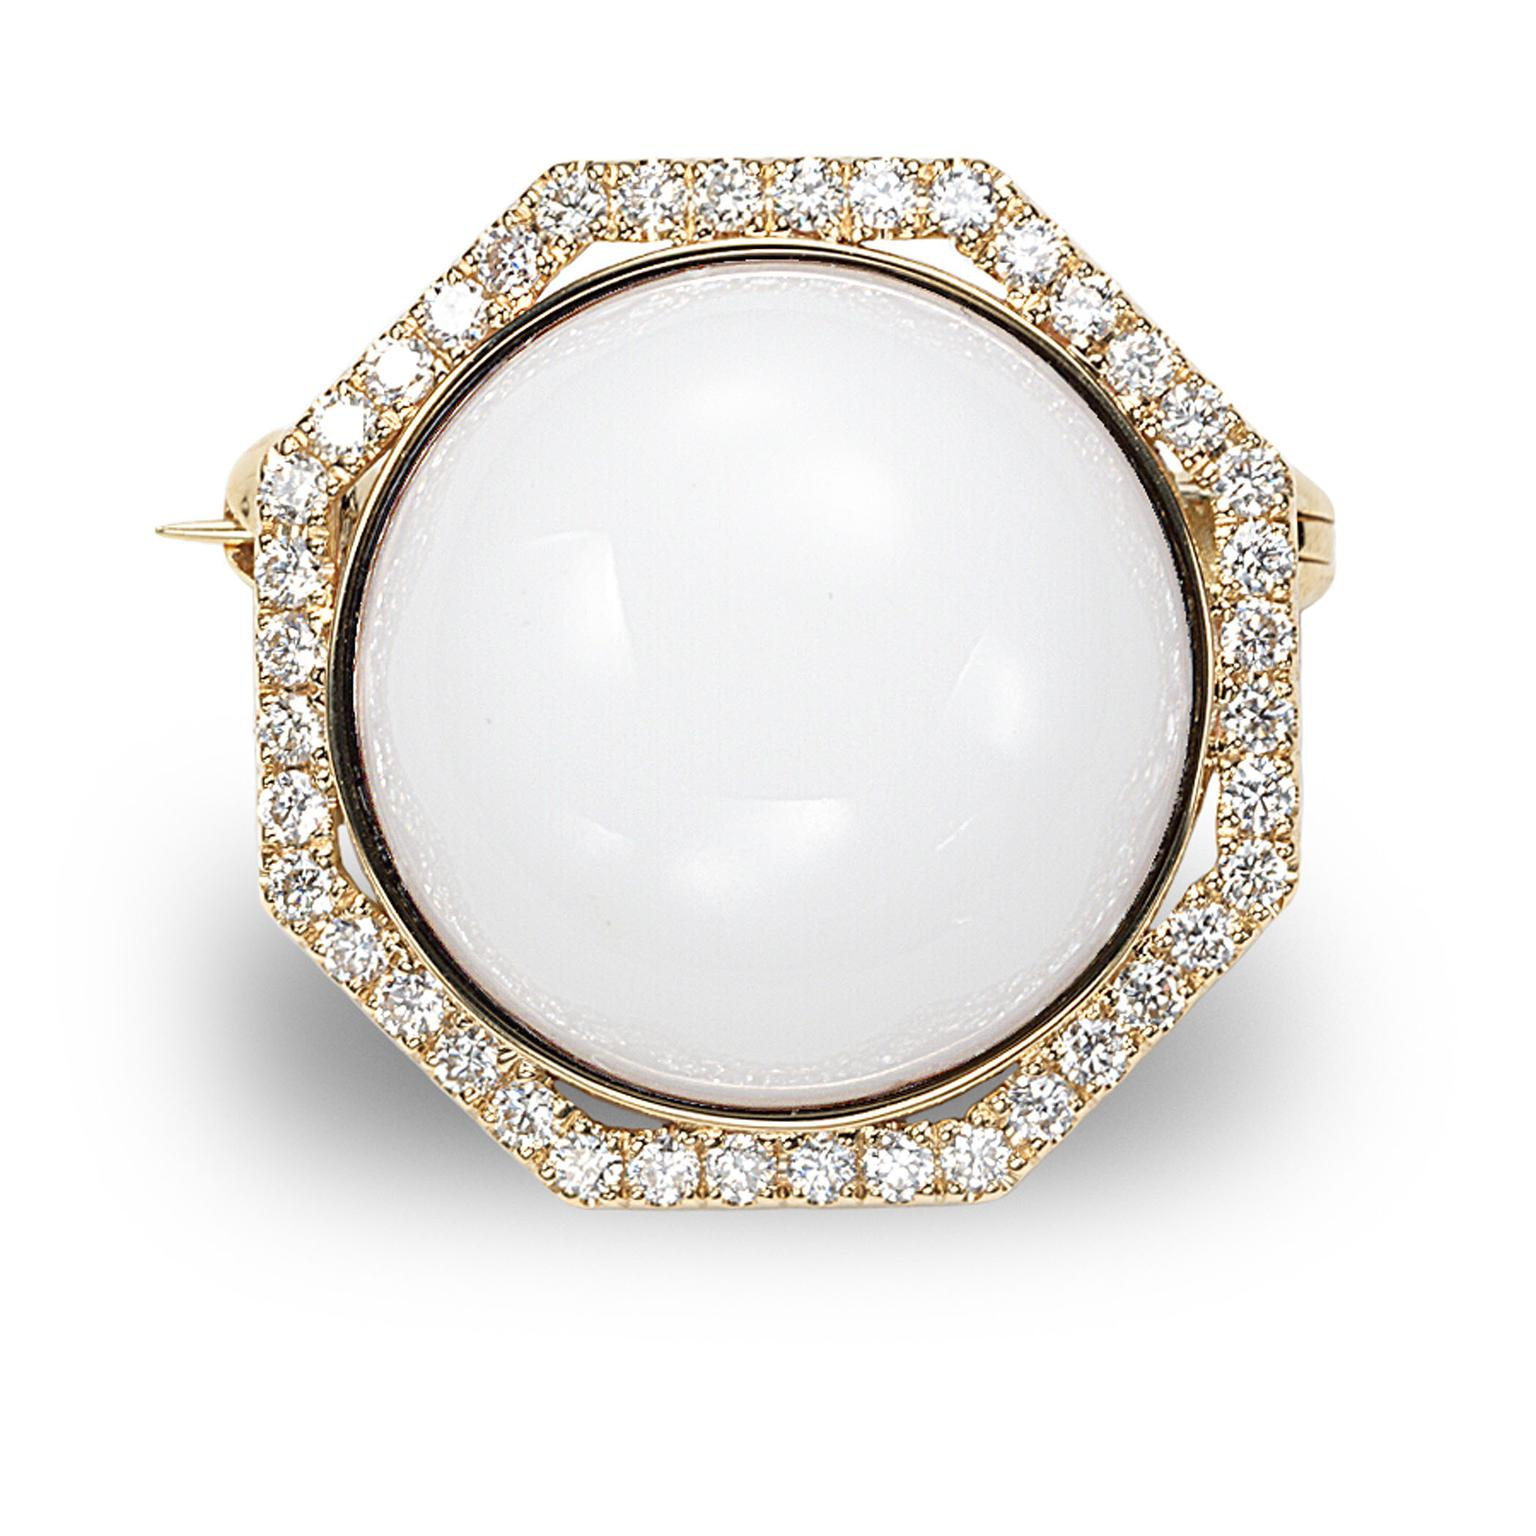 Octium Sun Collection rose gold Octagon diamond brooch with white agate